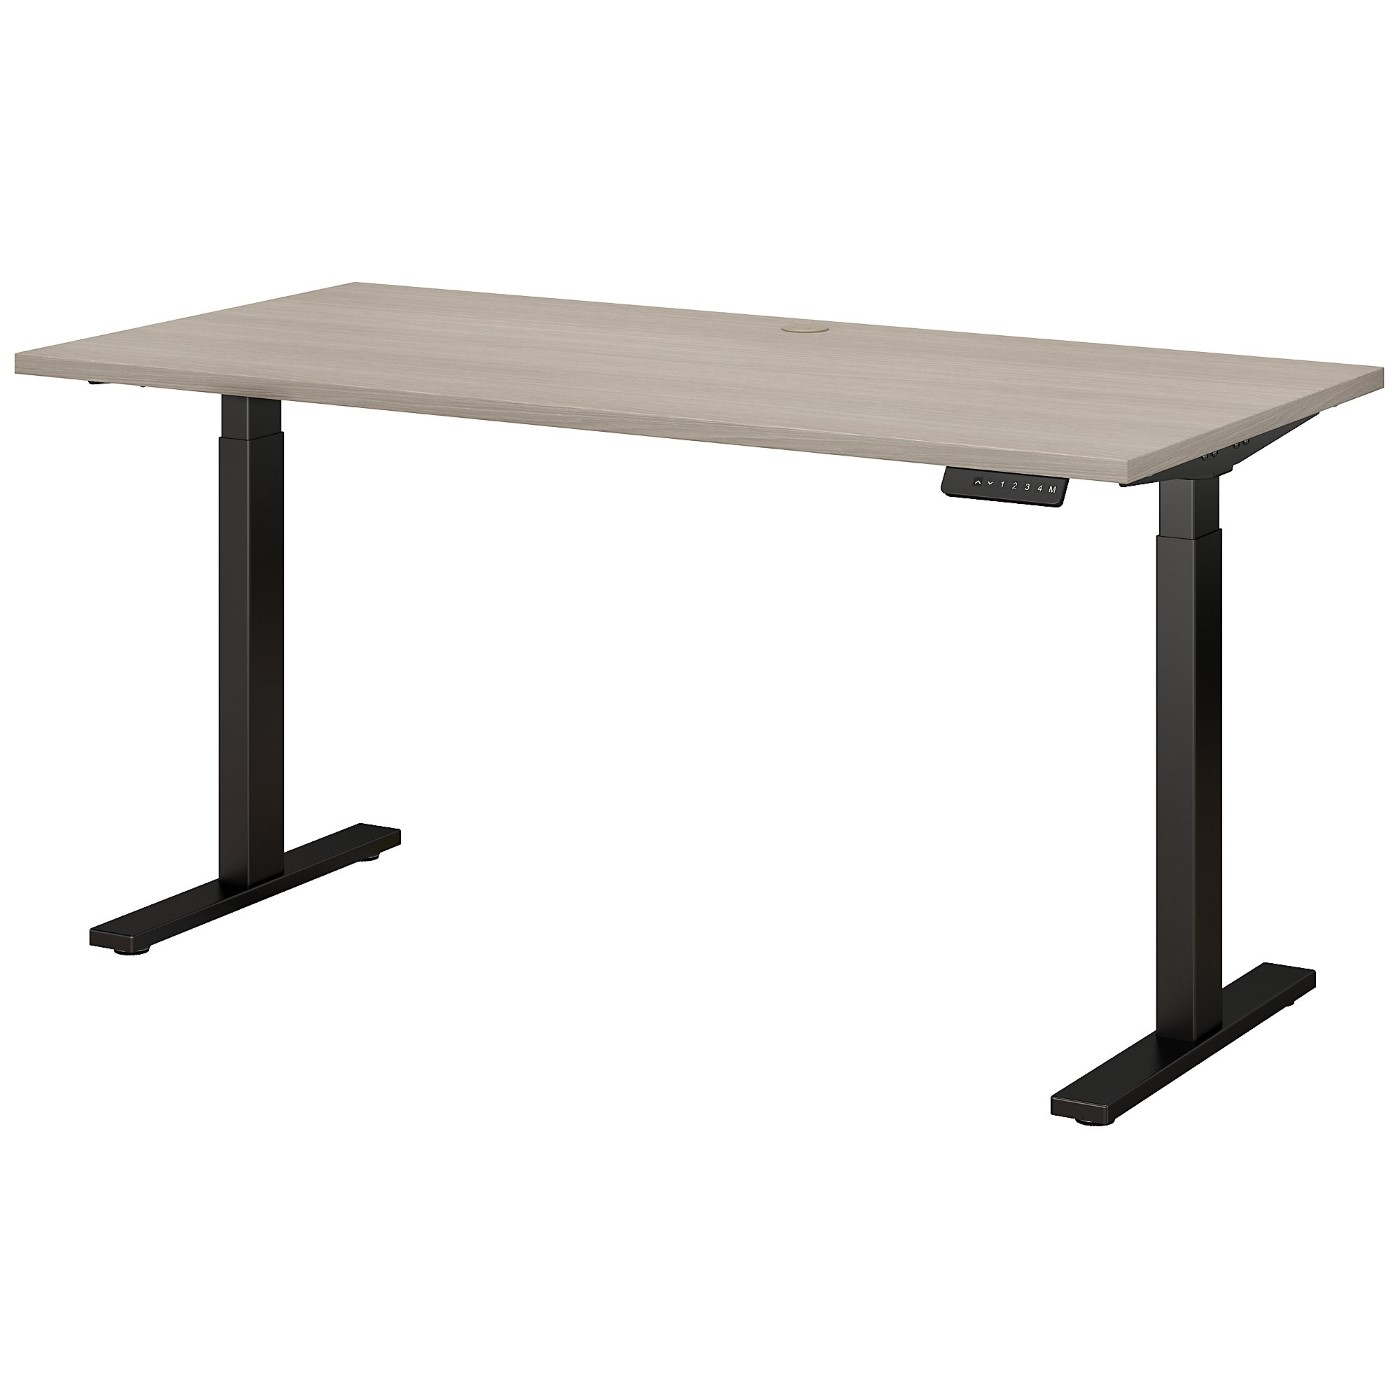 MOVE 60 SERIES BY BUSH BUSINESS FURNITURE 60W X 30D HEIGHT ADJUSTABLE STANDING DESK. FREE SHIPPING